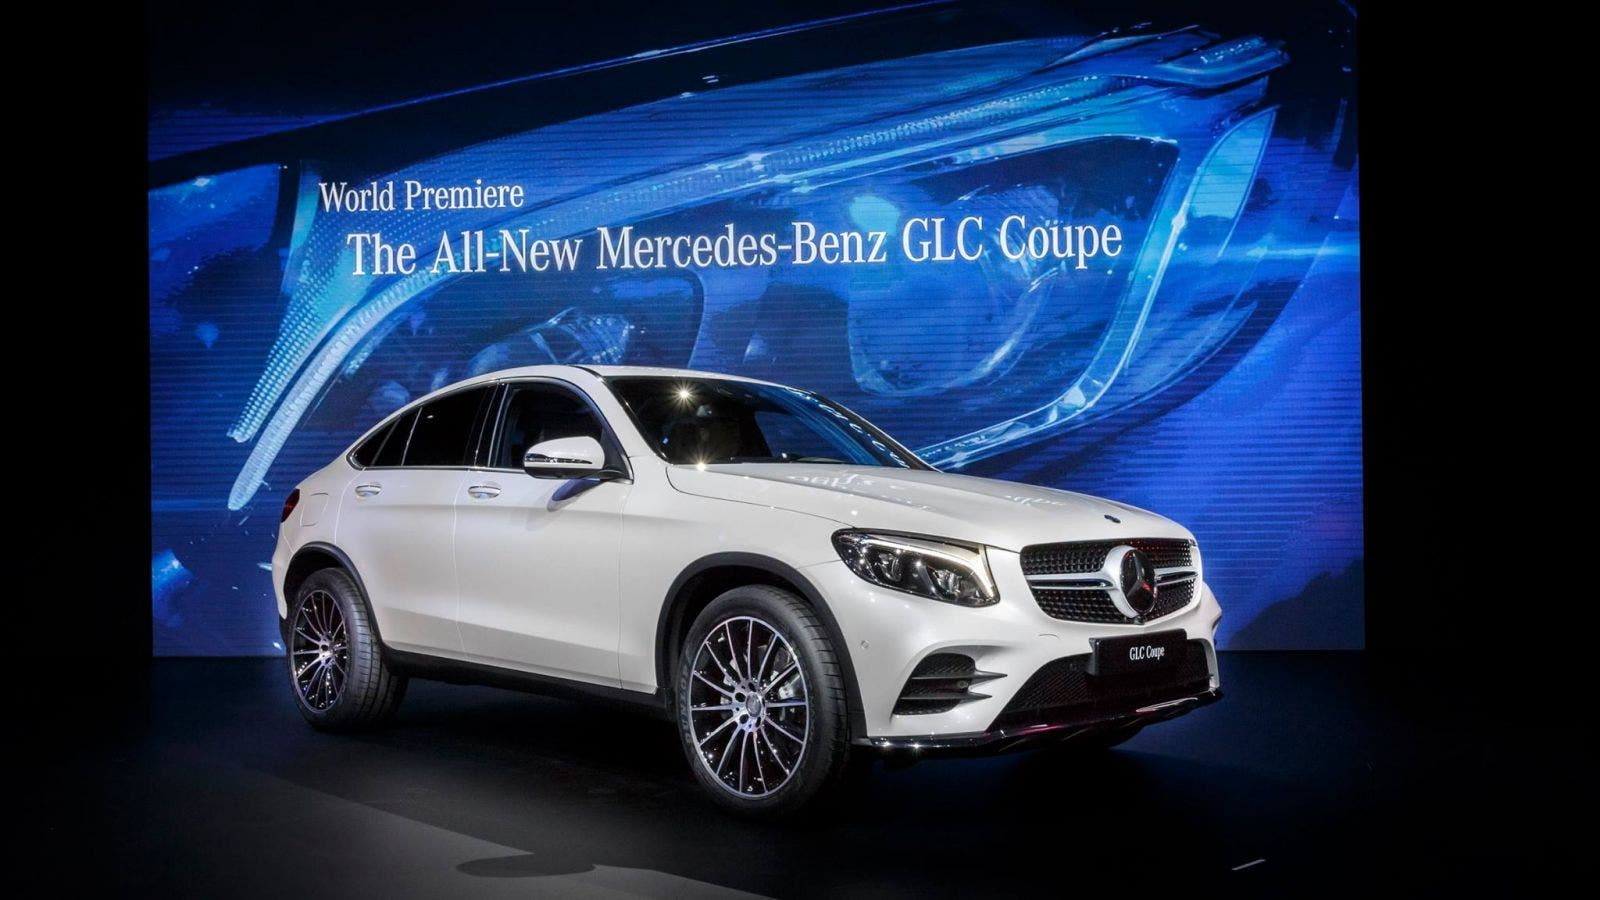 mercedes benz glc coup und weitere nyias 2016 highlights. Black Bedroom Furniture Sets. Home Design Ideas